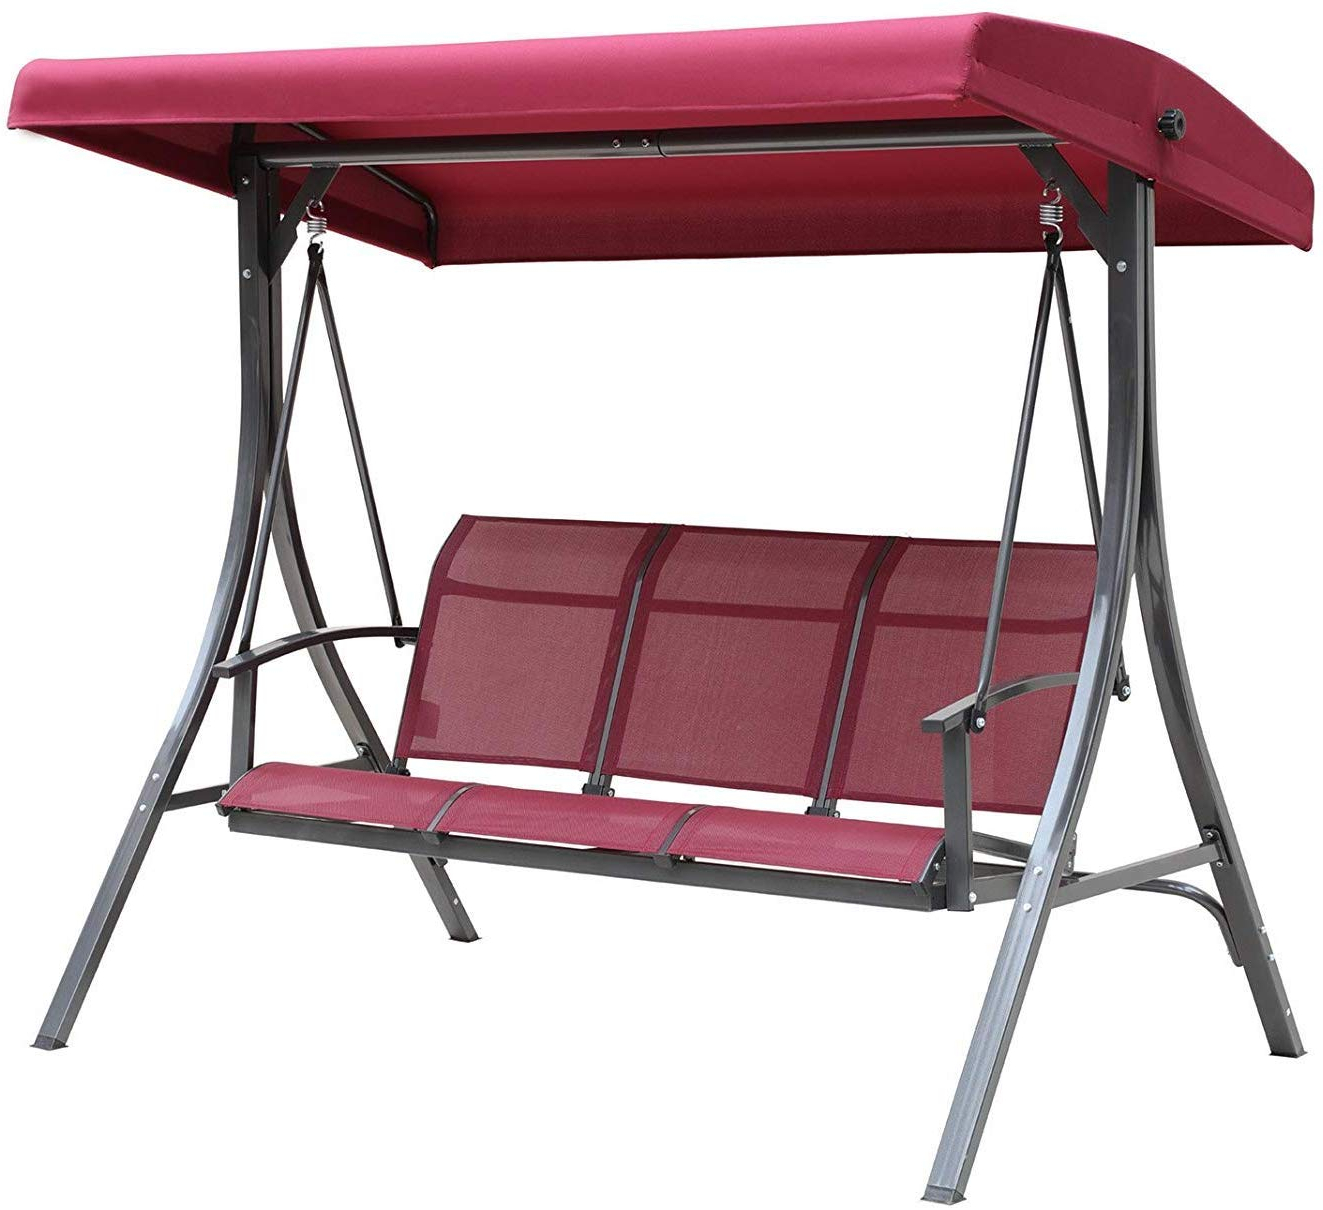 Trendy Kozyard Brenda 3 Person Outdoor Patio Swing With Strong Weather Resistant  Powder Coated Steel Frame And Textilence Seats(Red) With Regard To 3 Person Red With Brown Powder Coated Frame Steel Outdoor Swings (Gallery 3 of 30)